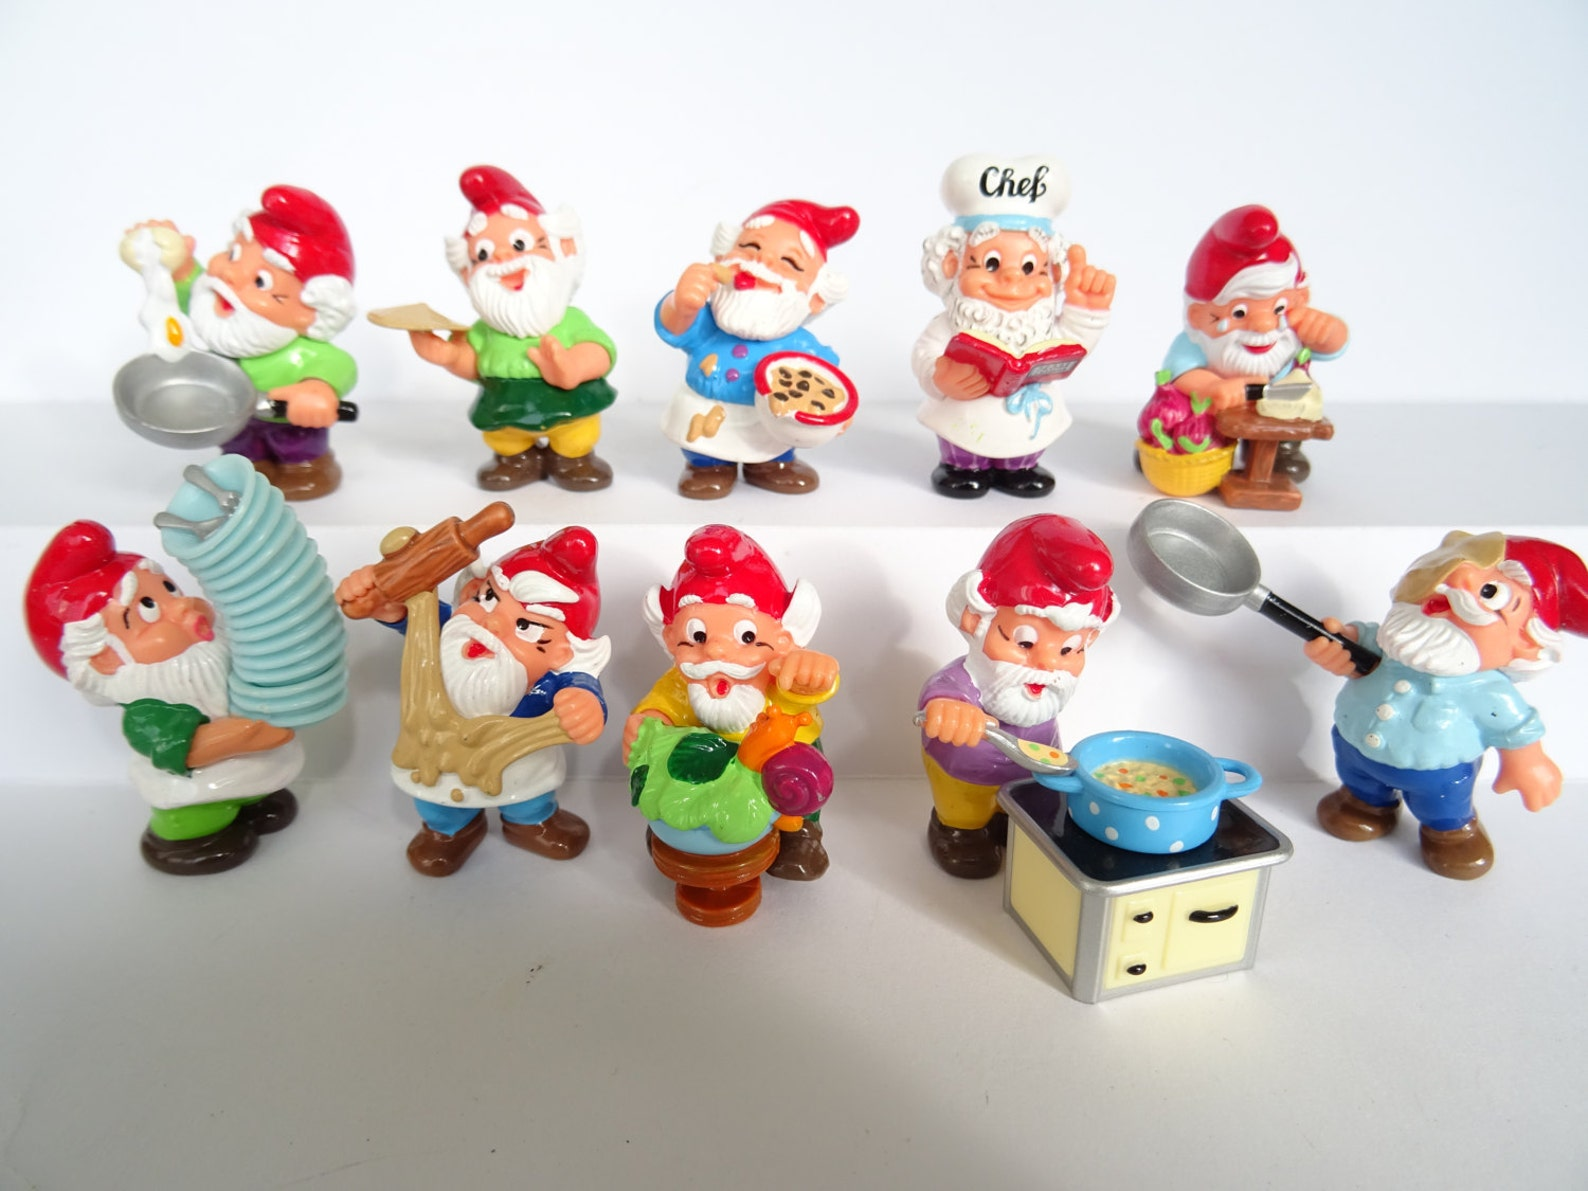 Kinder Surprise Collectible 10 Figures Set Garden Dwarfs Gnomes 1992 in the kitchen Figure Miniature